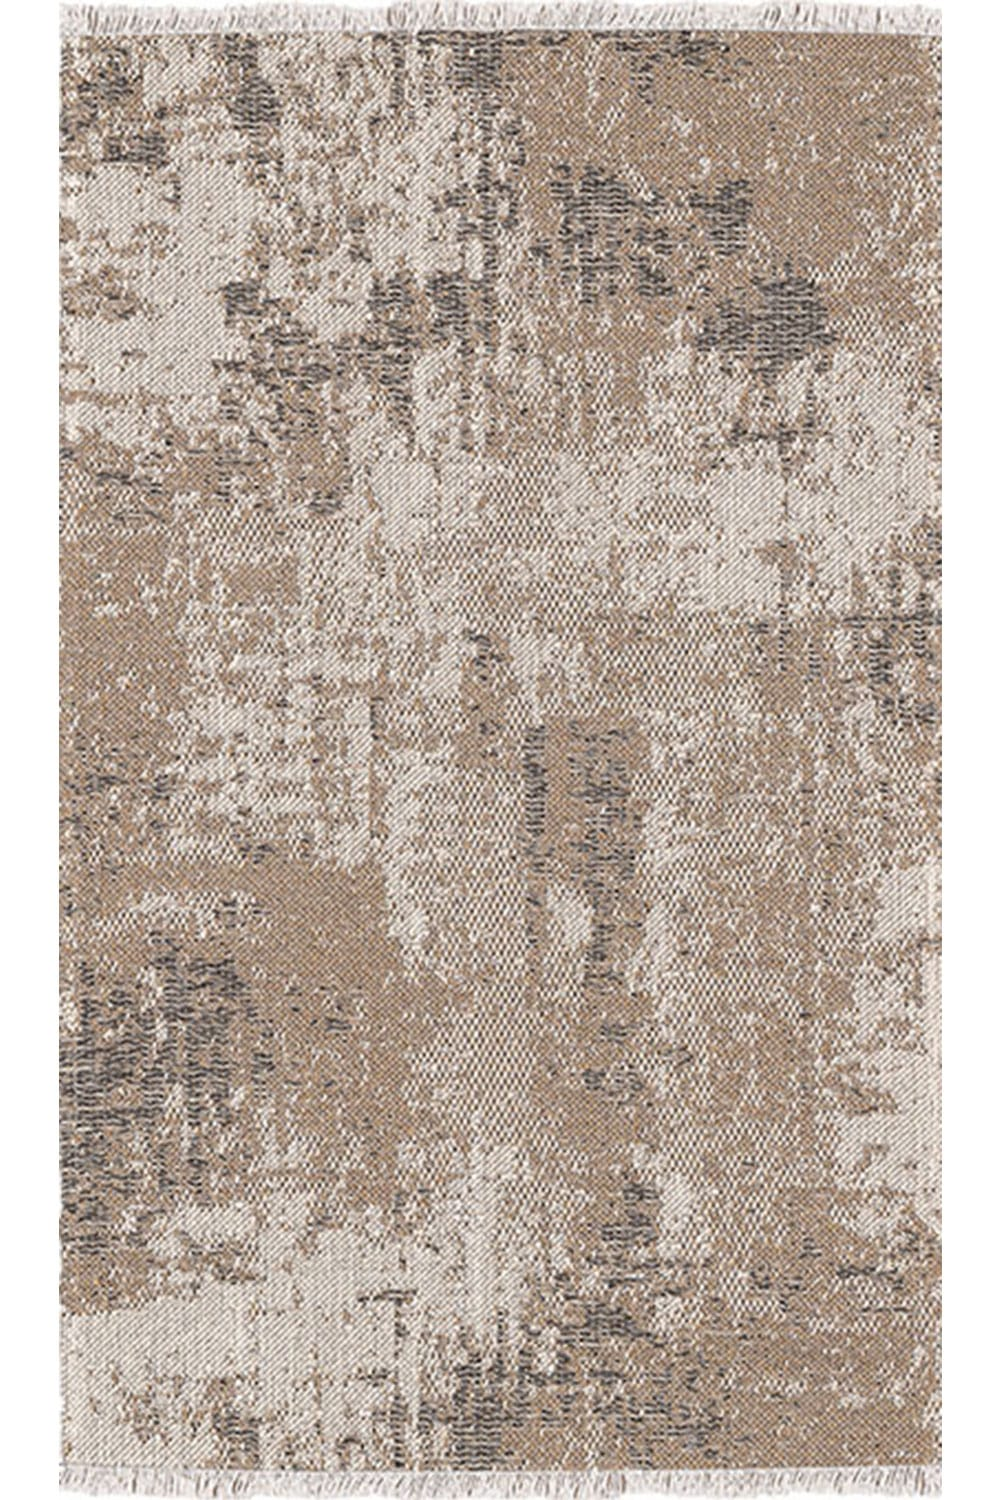 Χαλι Kasbah 2809/605 – Beige New Plan 70X150